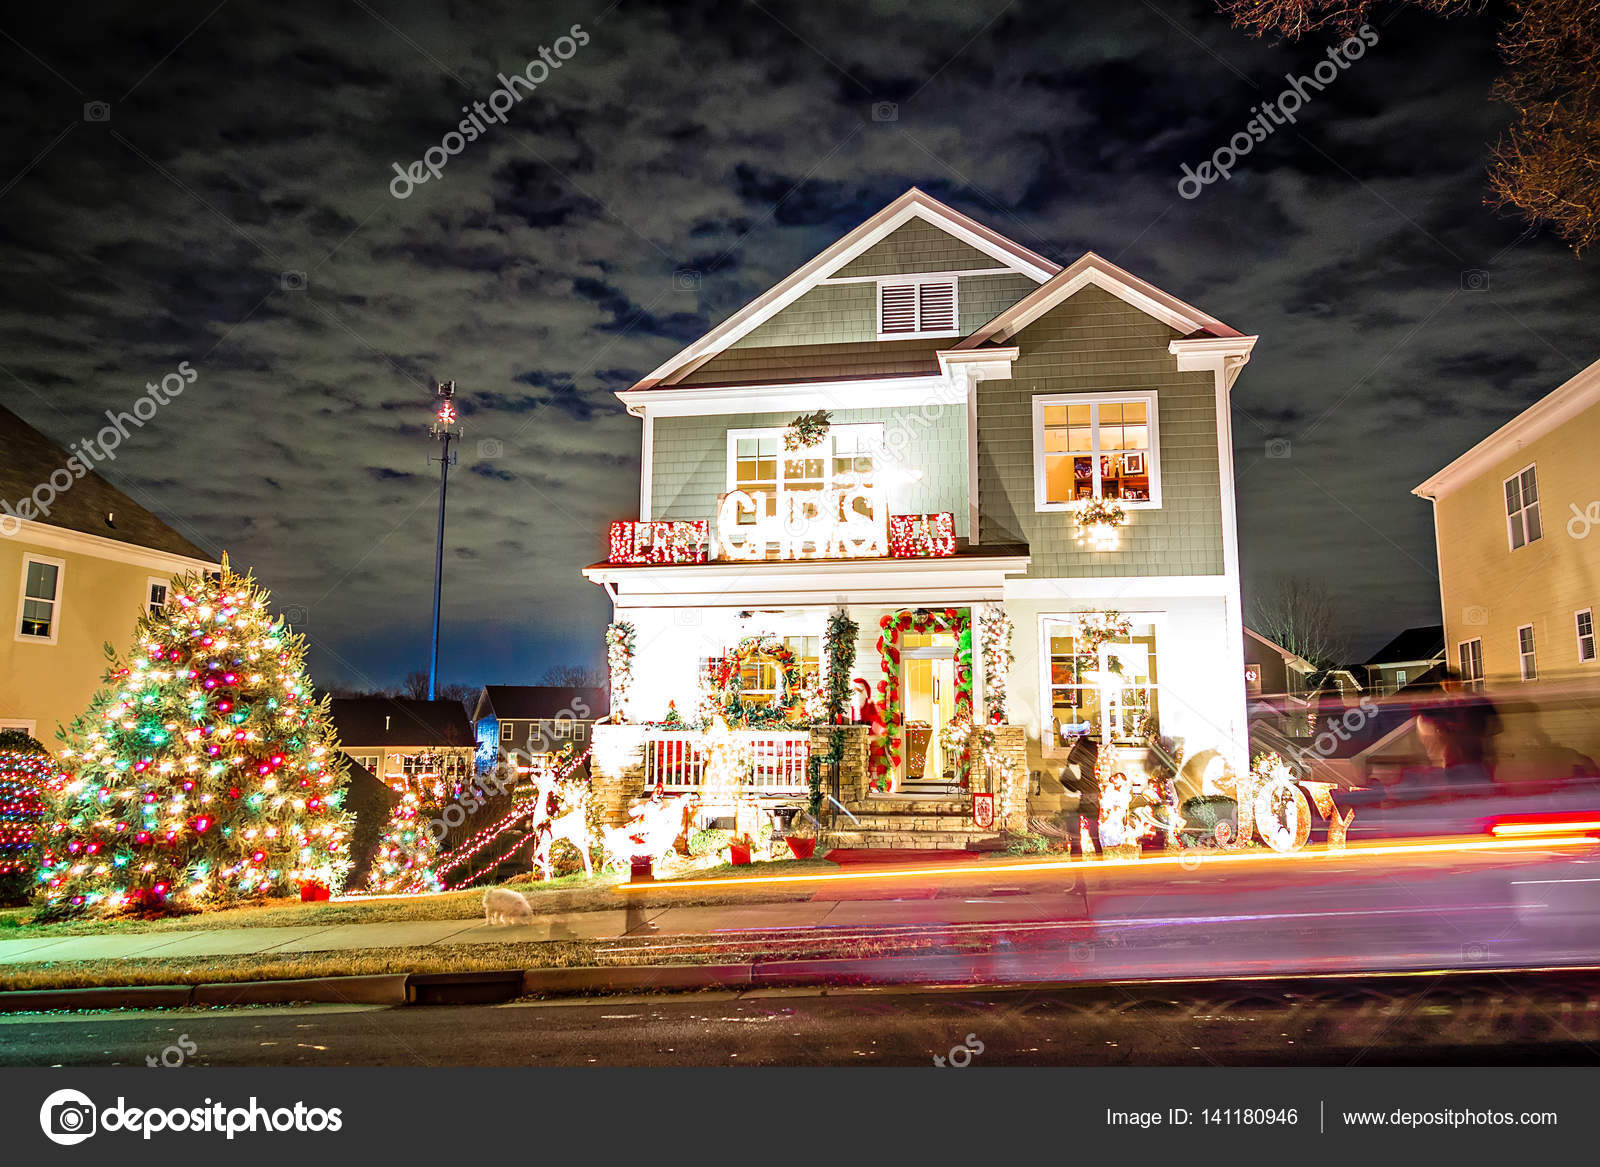 Outdoor christmas decorations at christmas town usa — Stock Photo